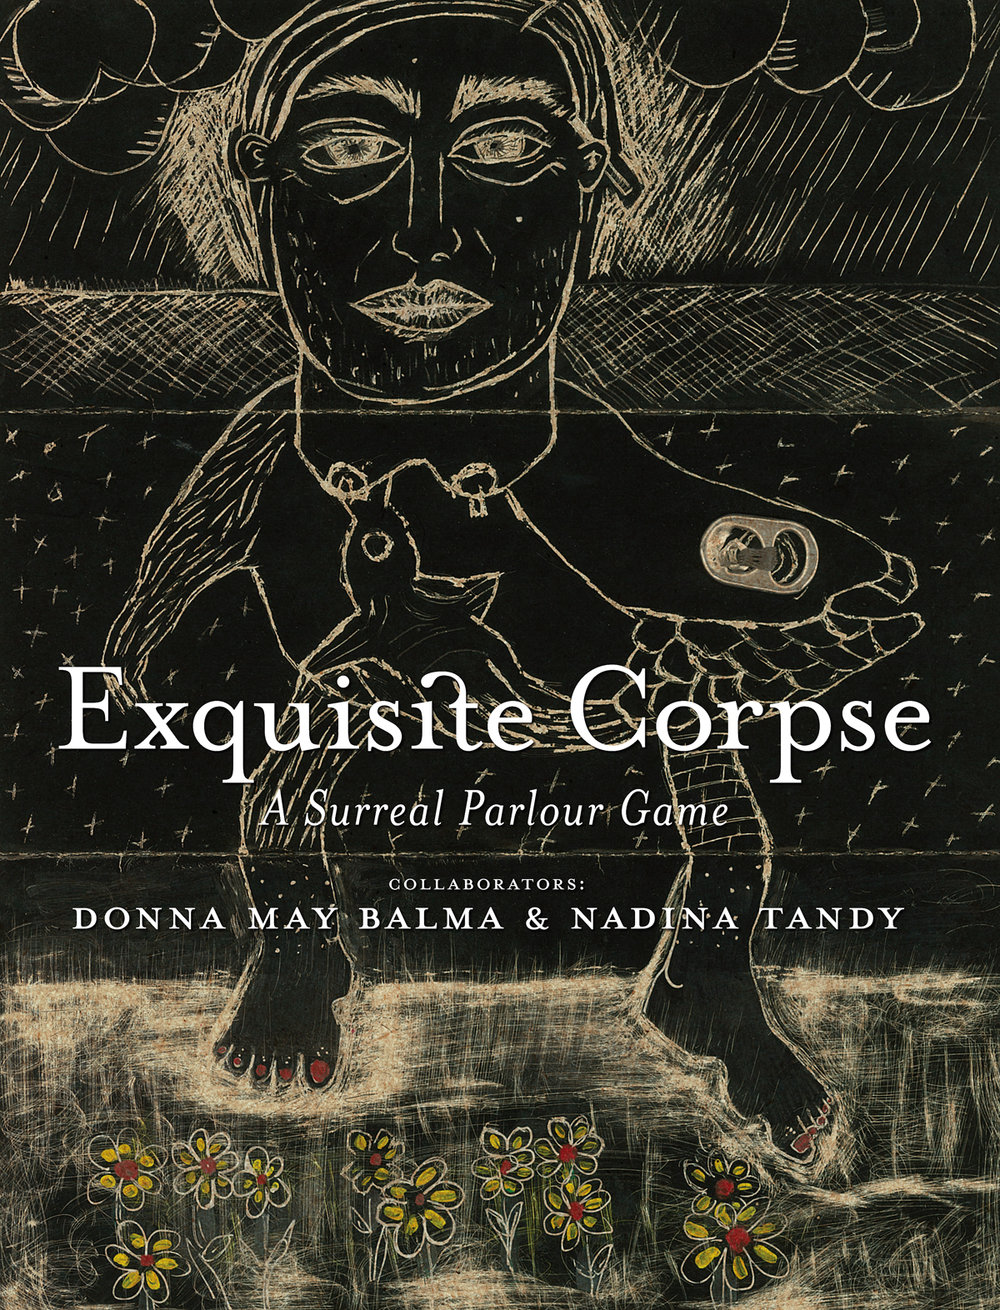 Catalogue Cover and design by Derek von Essen    Exquisite Corpse by Donna May Balma & Nadina Tandy